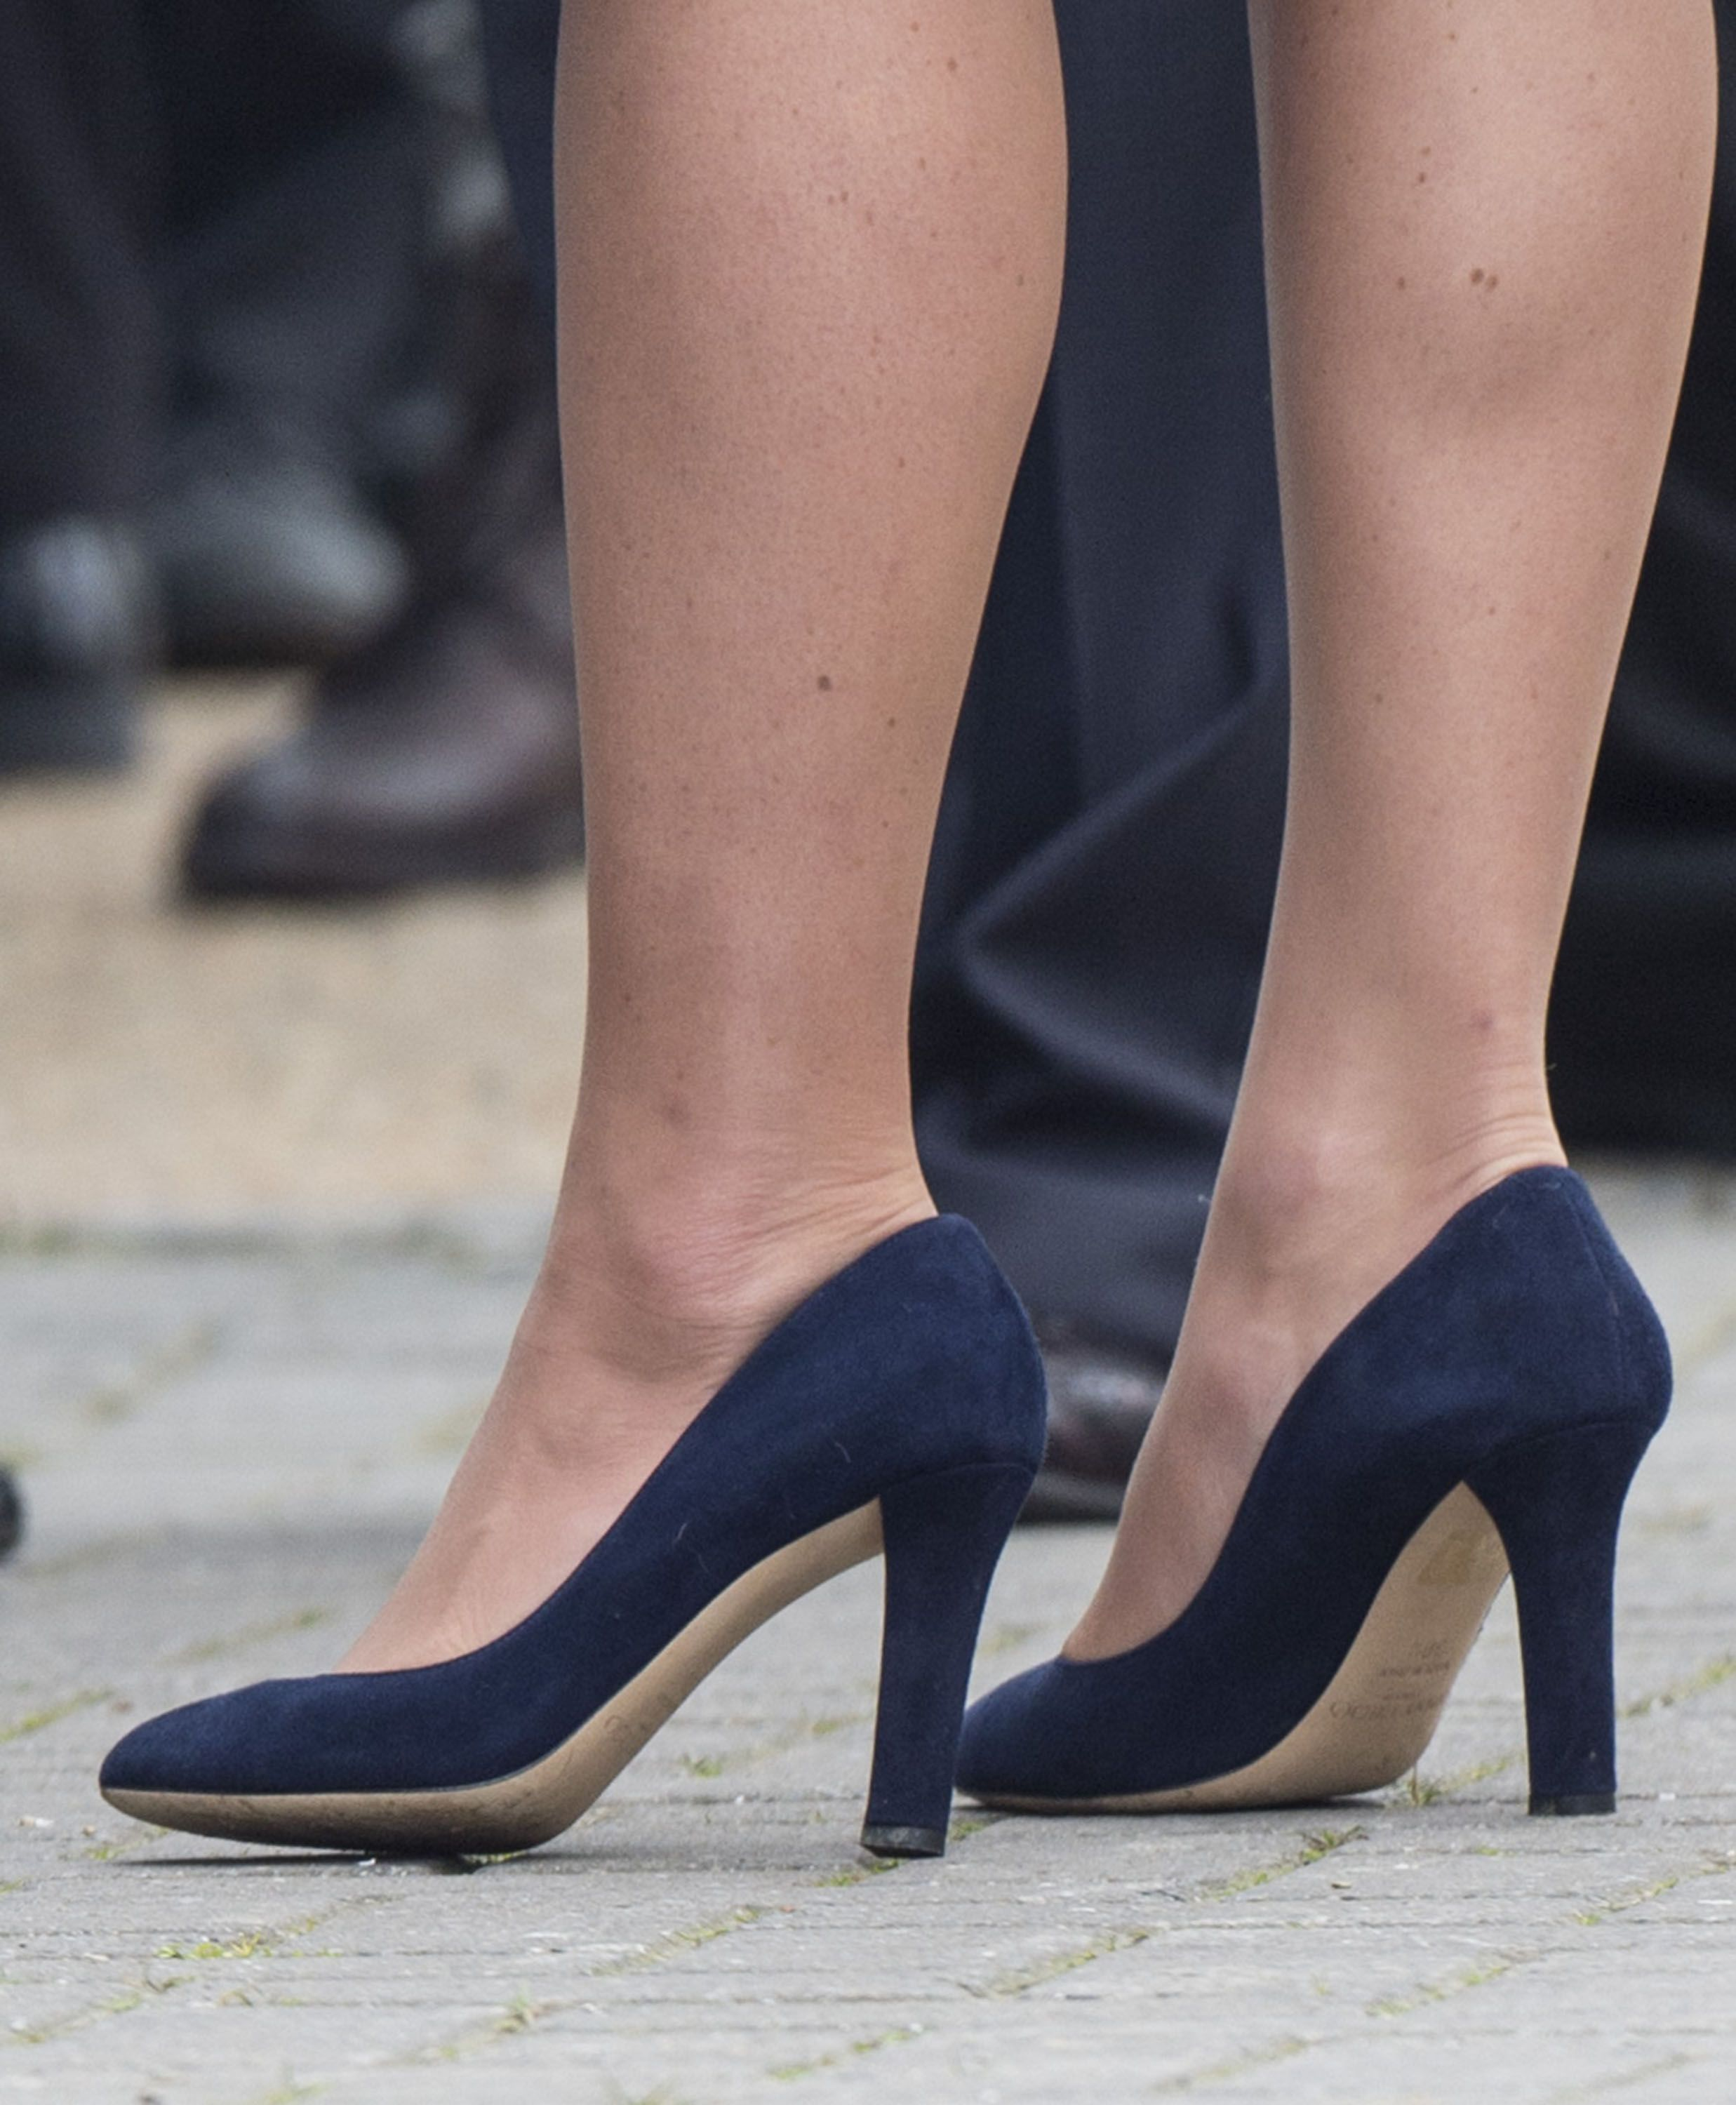 00fab6197cd Every pair of shoes Kate Middleton has ever worn